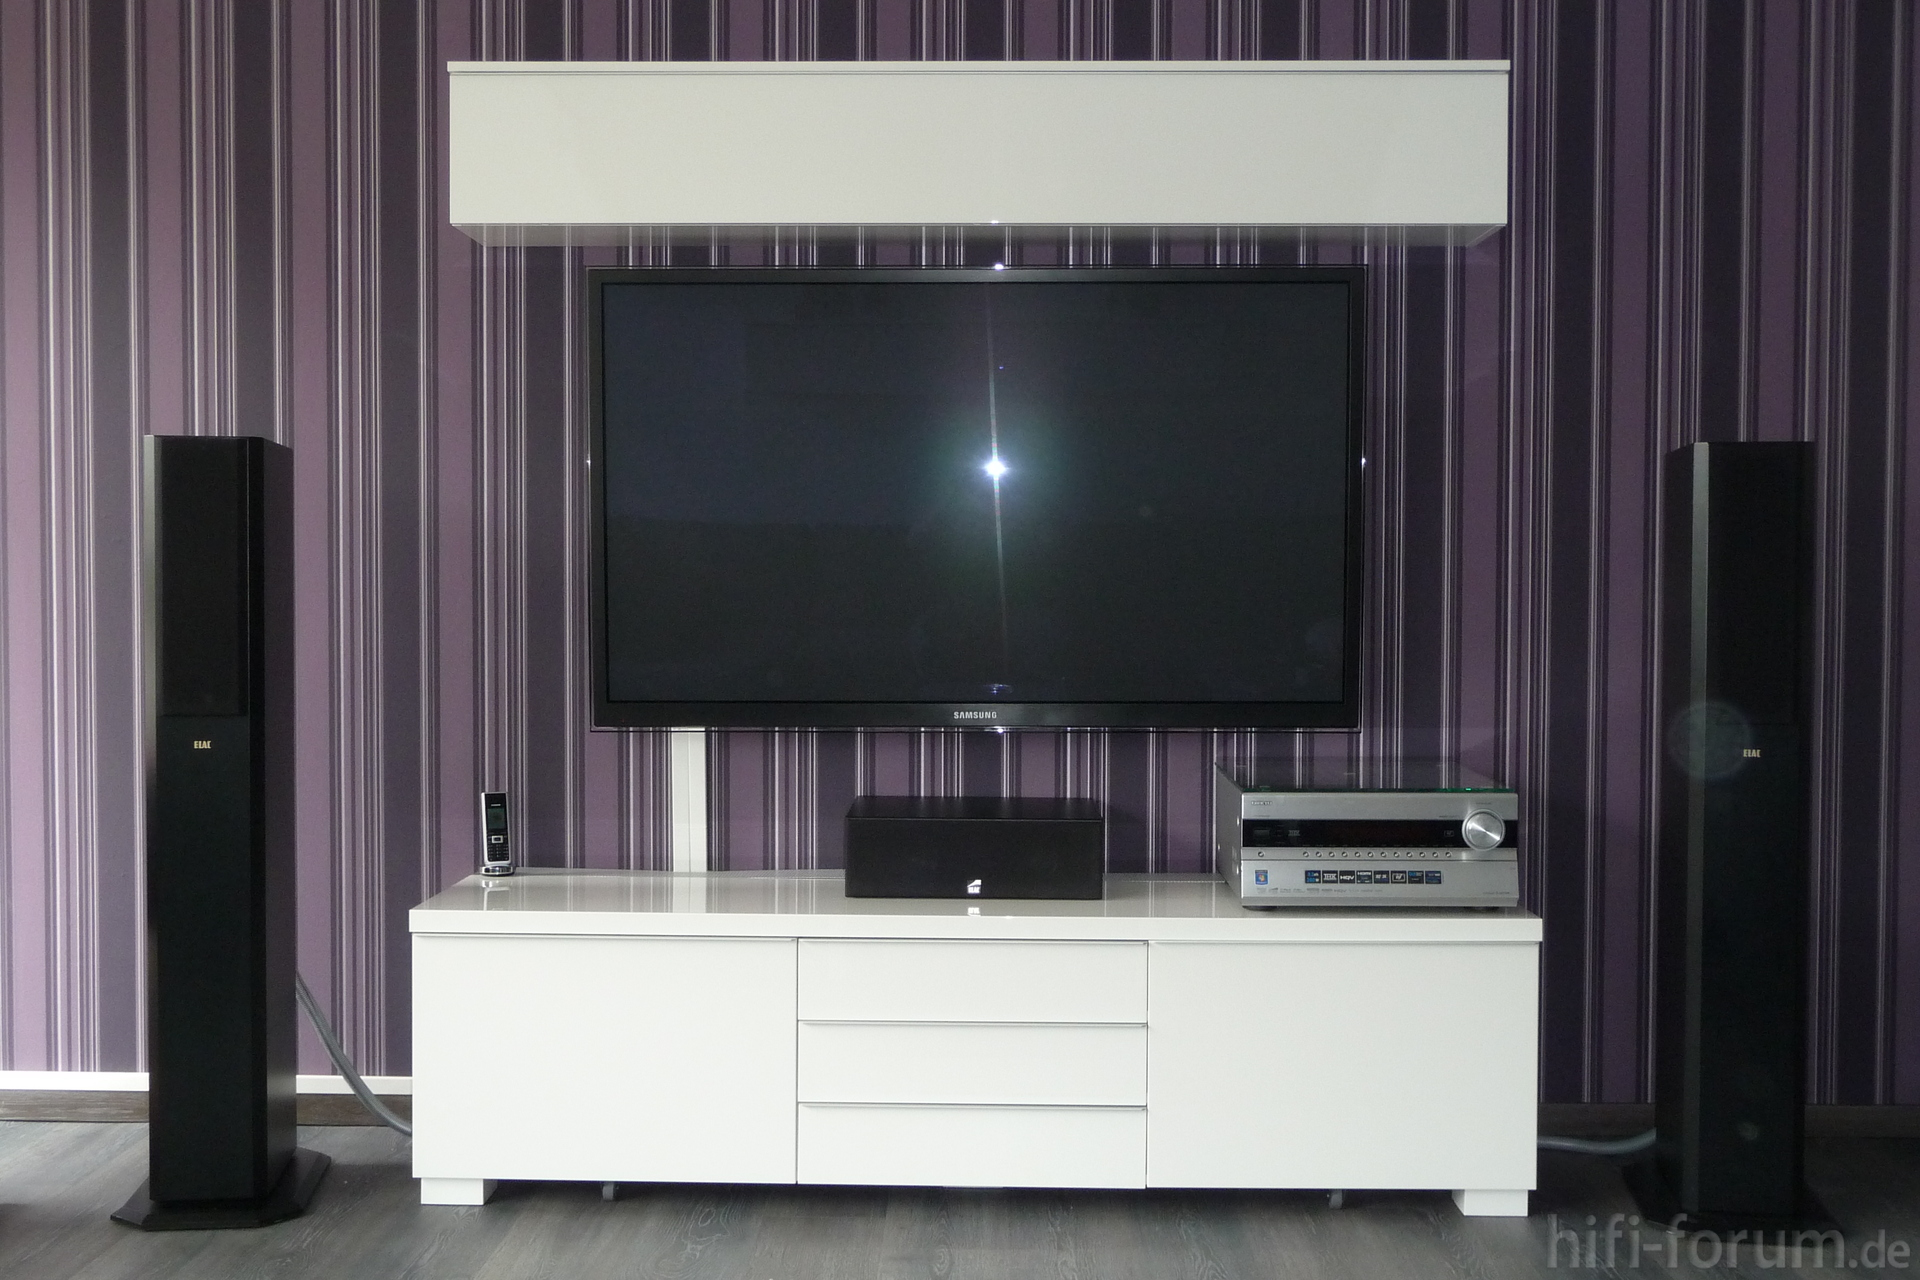 ps59d7000 mt ikea tv m bel heimkino ikea mt ps59d7000 samsung tvm bel hifi